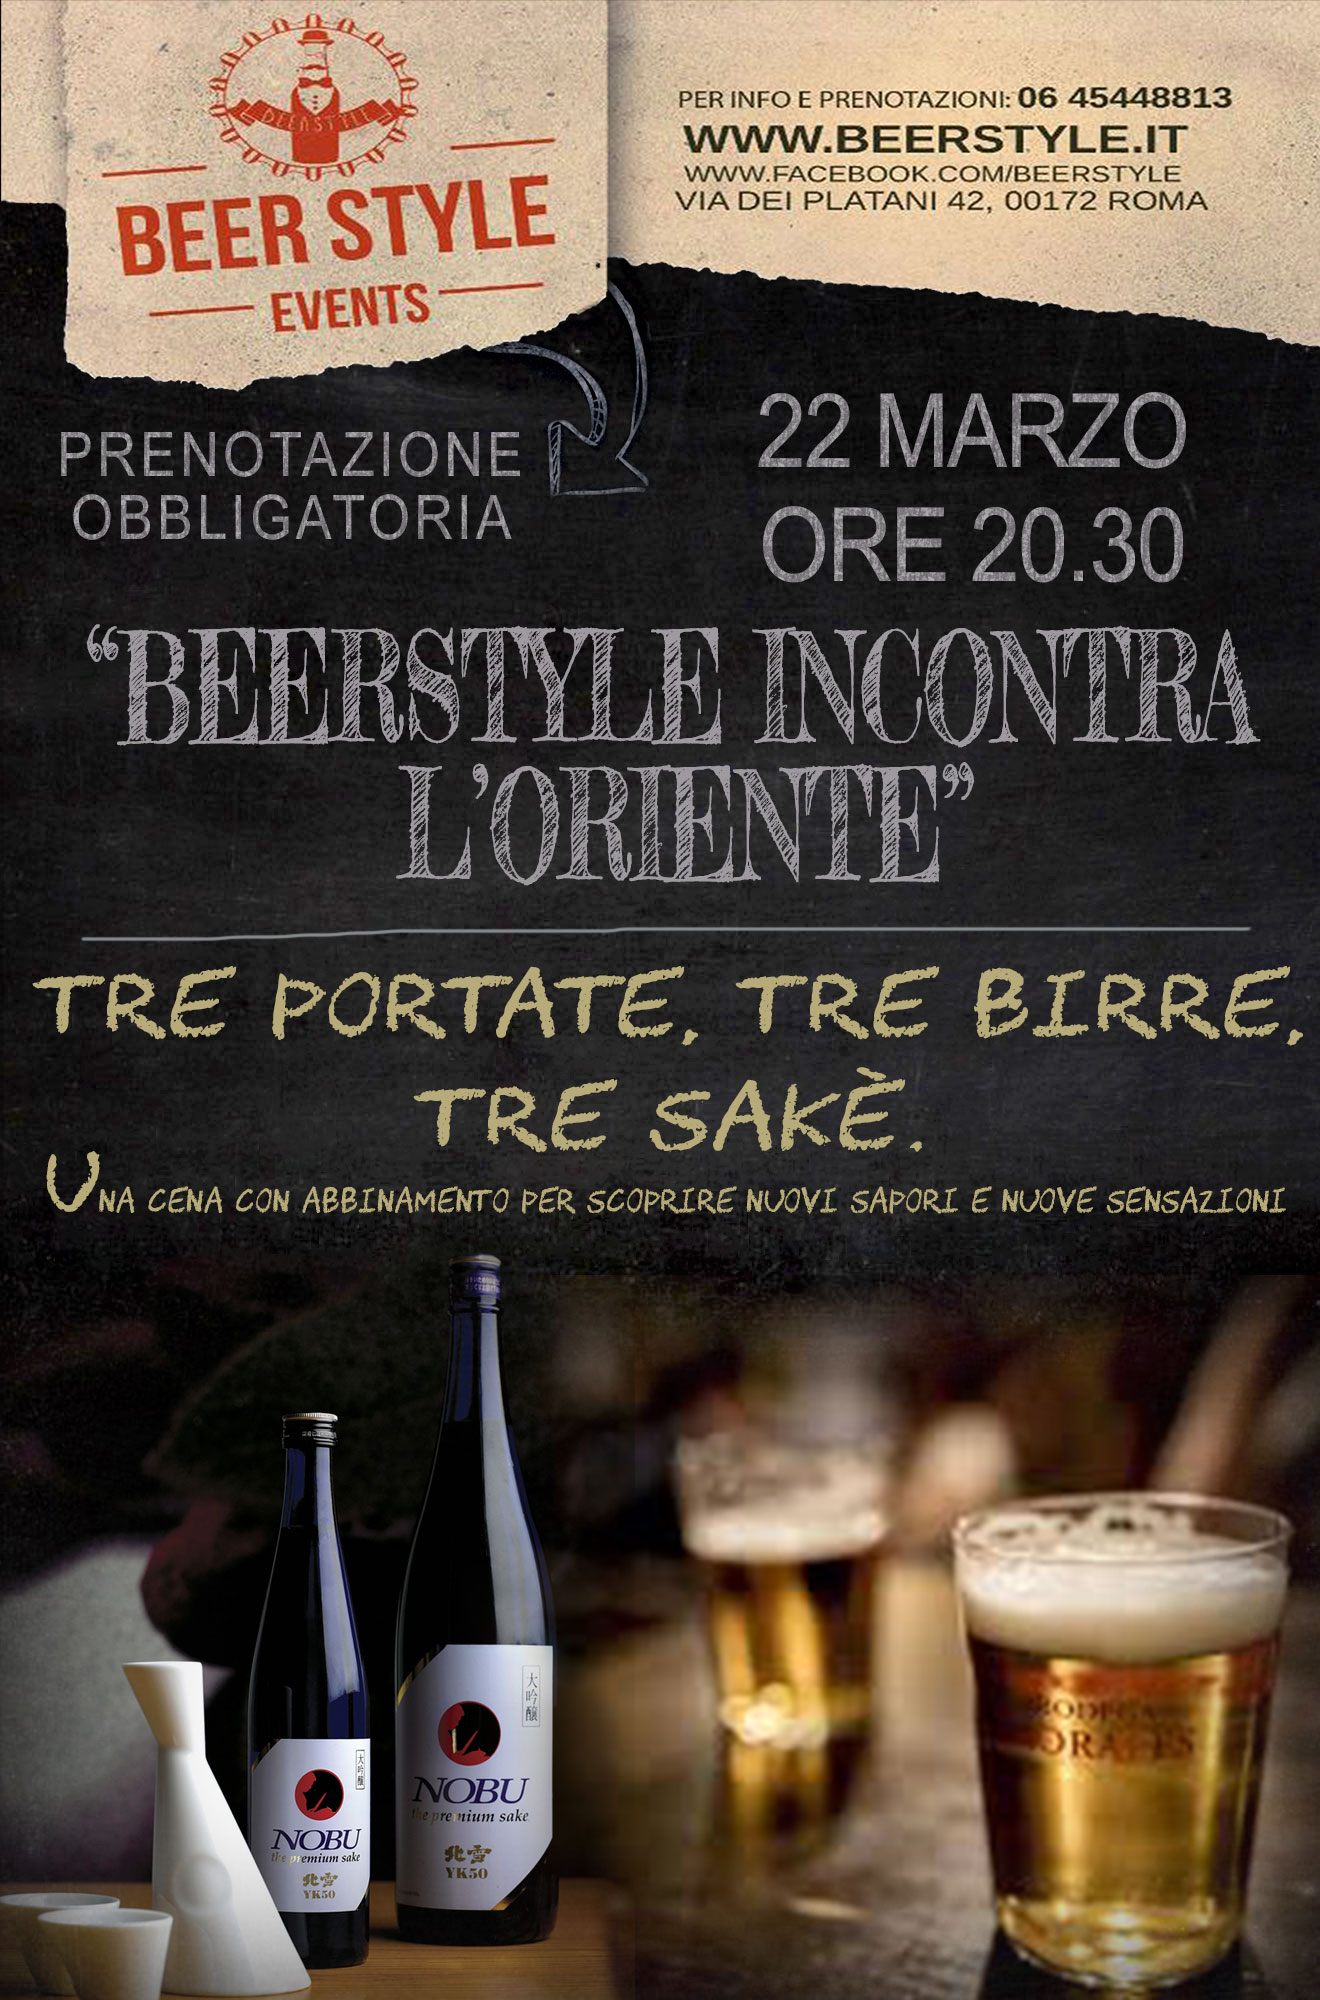 Beerstyle incontra l'oriente